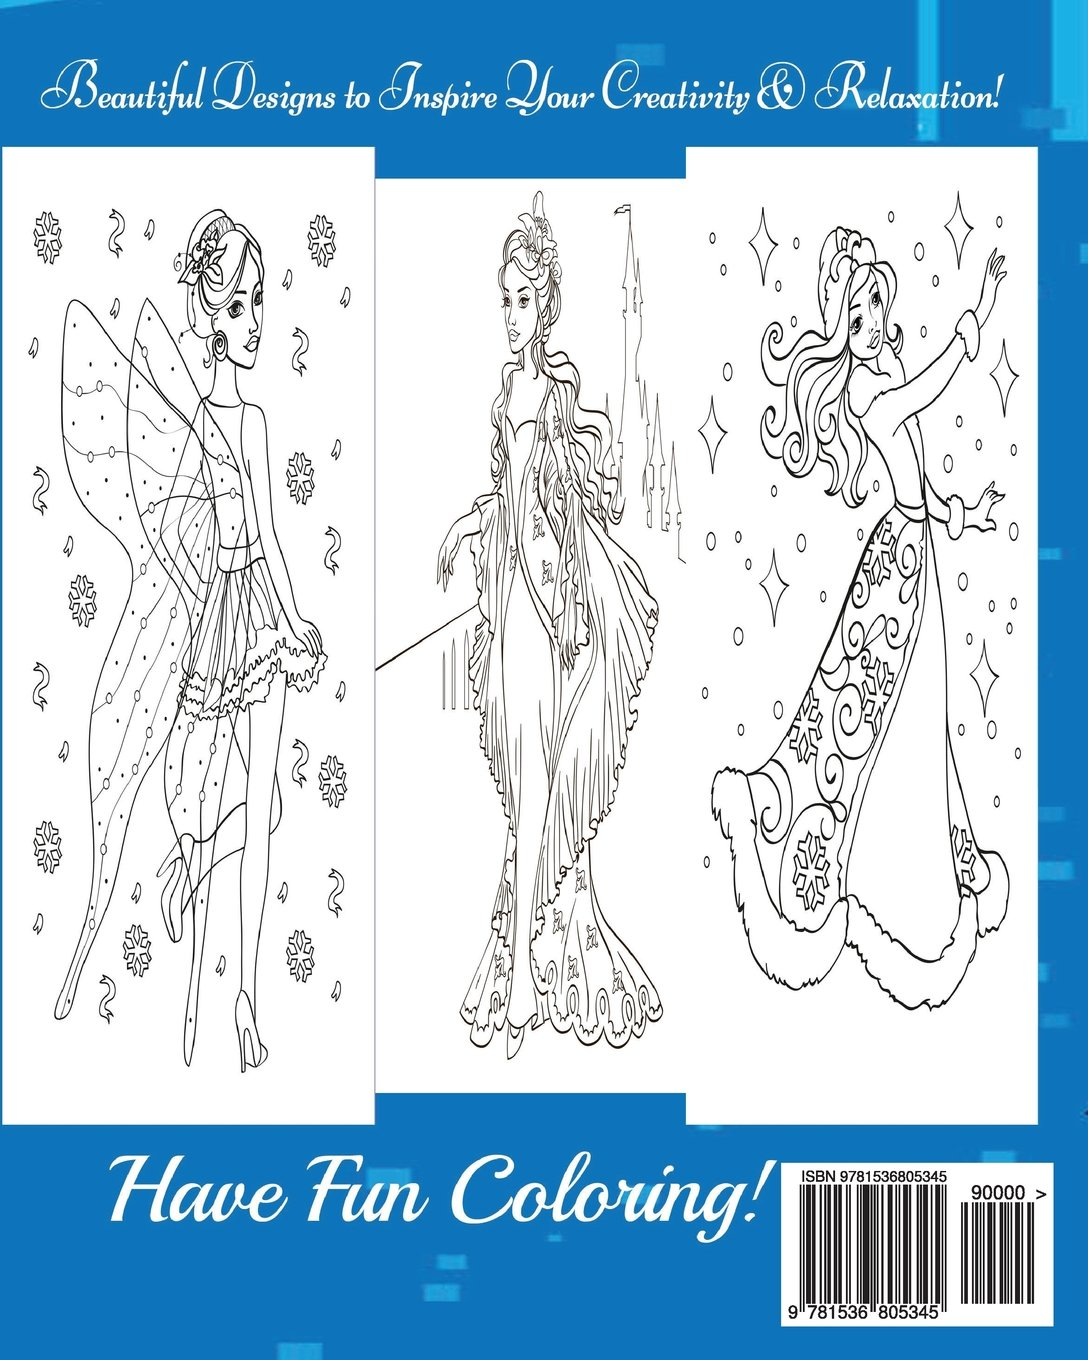 Disney princess art therapy colouring book - Disney Princess A Blue Dream Adult Coloring Book To Inspire Creativity And Relaxation Volume 1 Dave Archer Adult Coloring Book 9781536805345